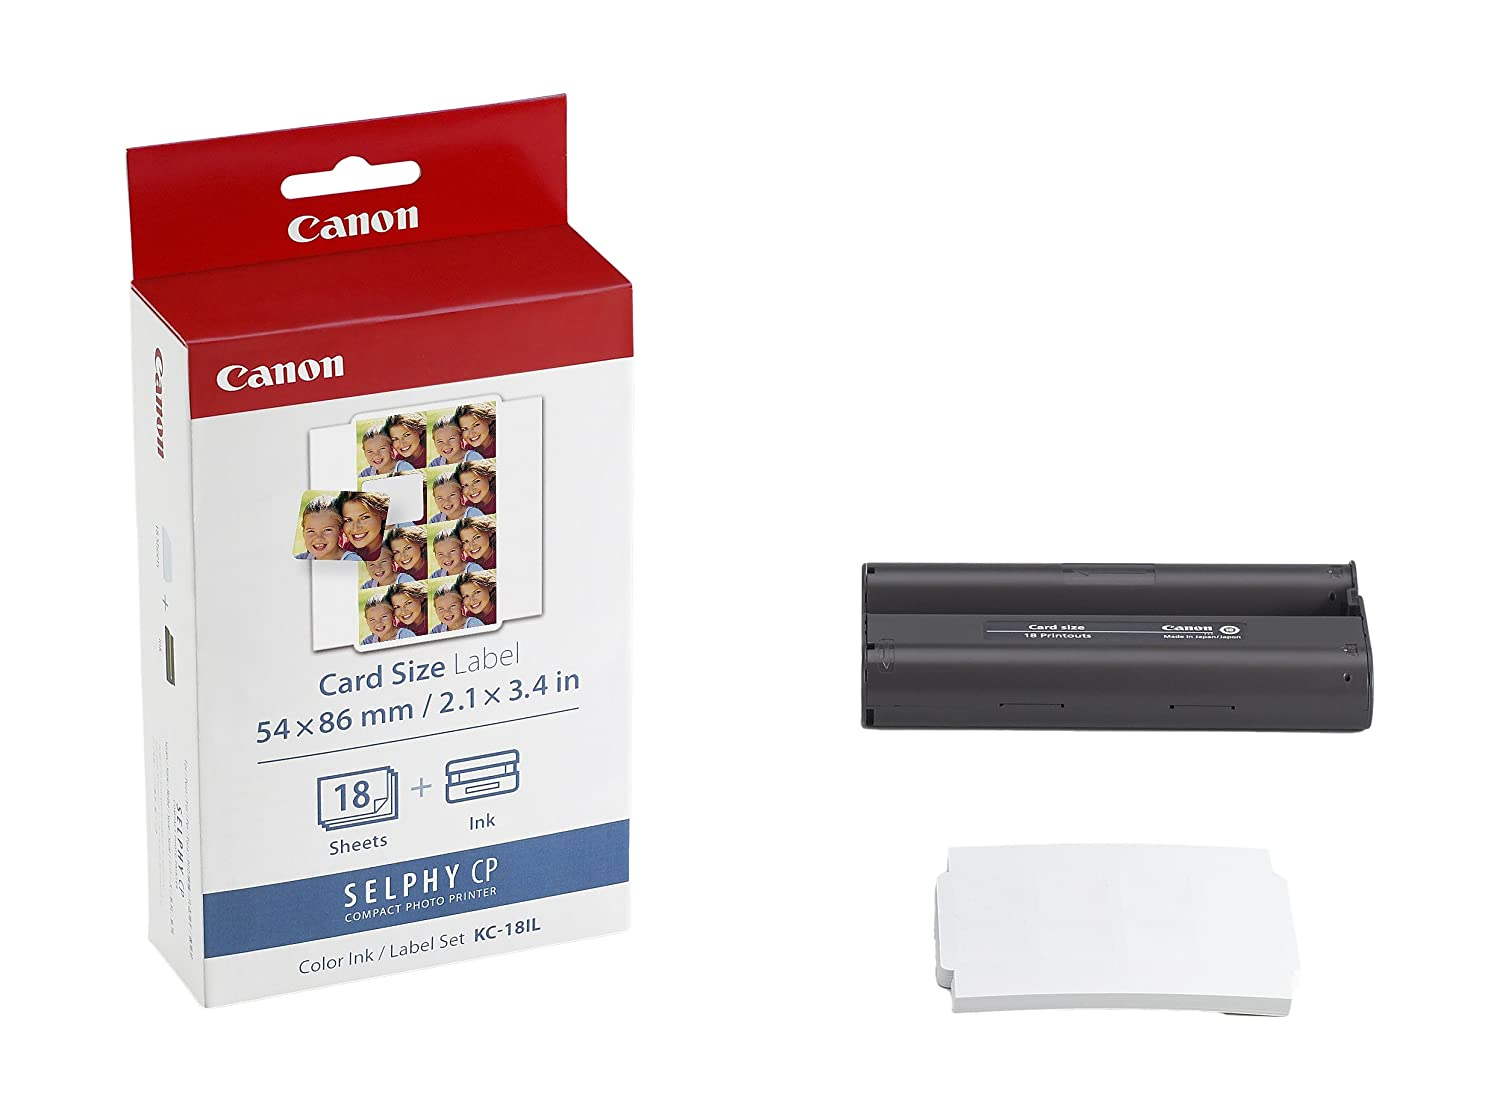 Color printer label - Amazon Com Canon Kc 18il Color Ink And Label Set Cp 100 200 300 Printers Office Products